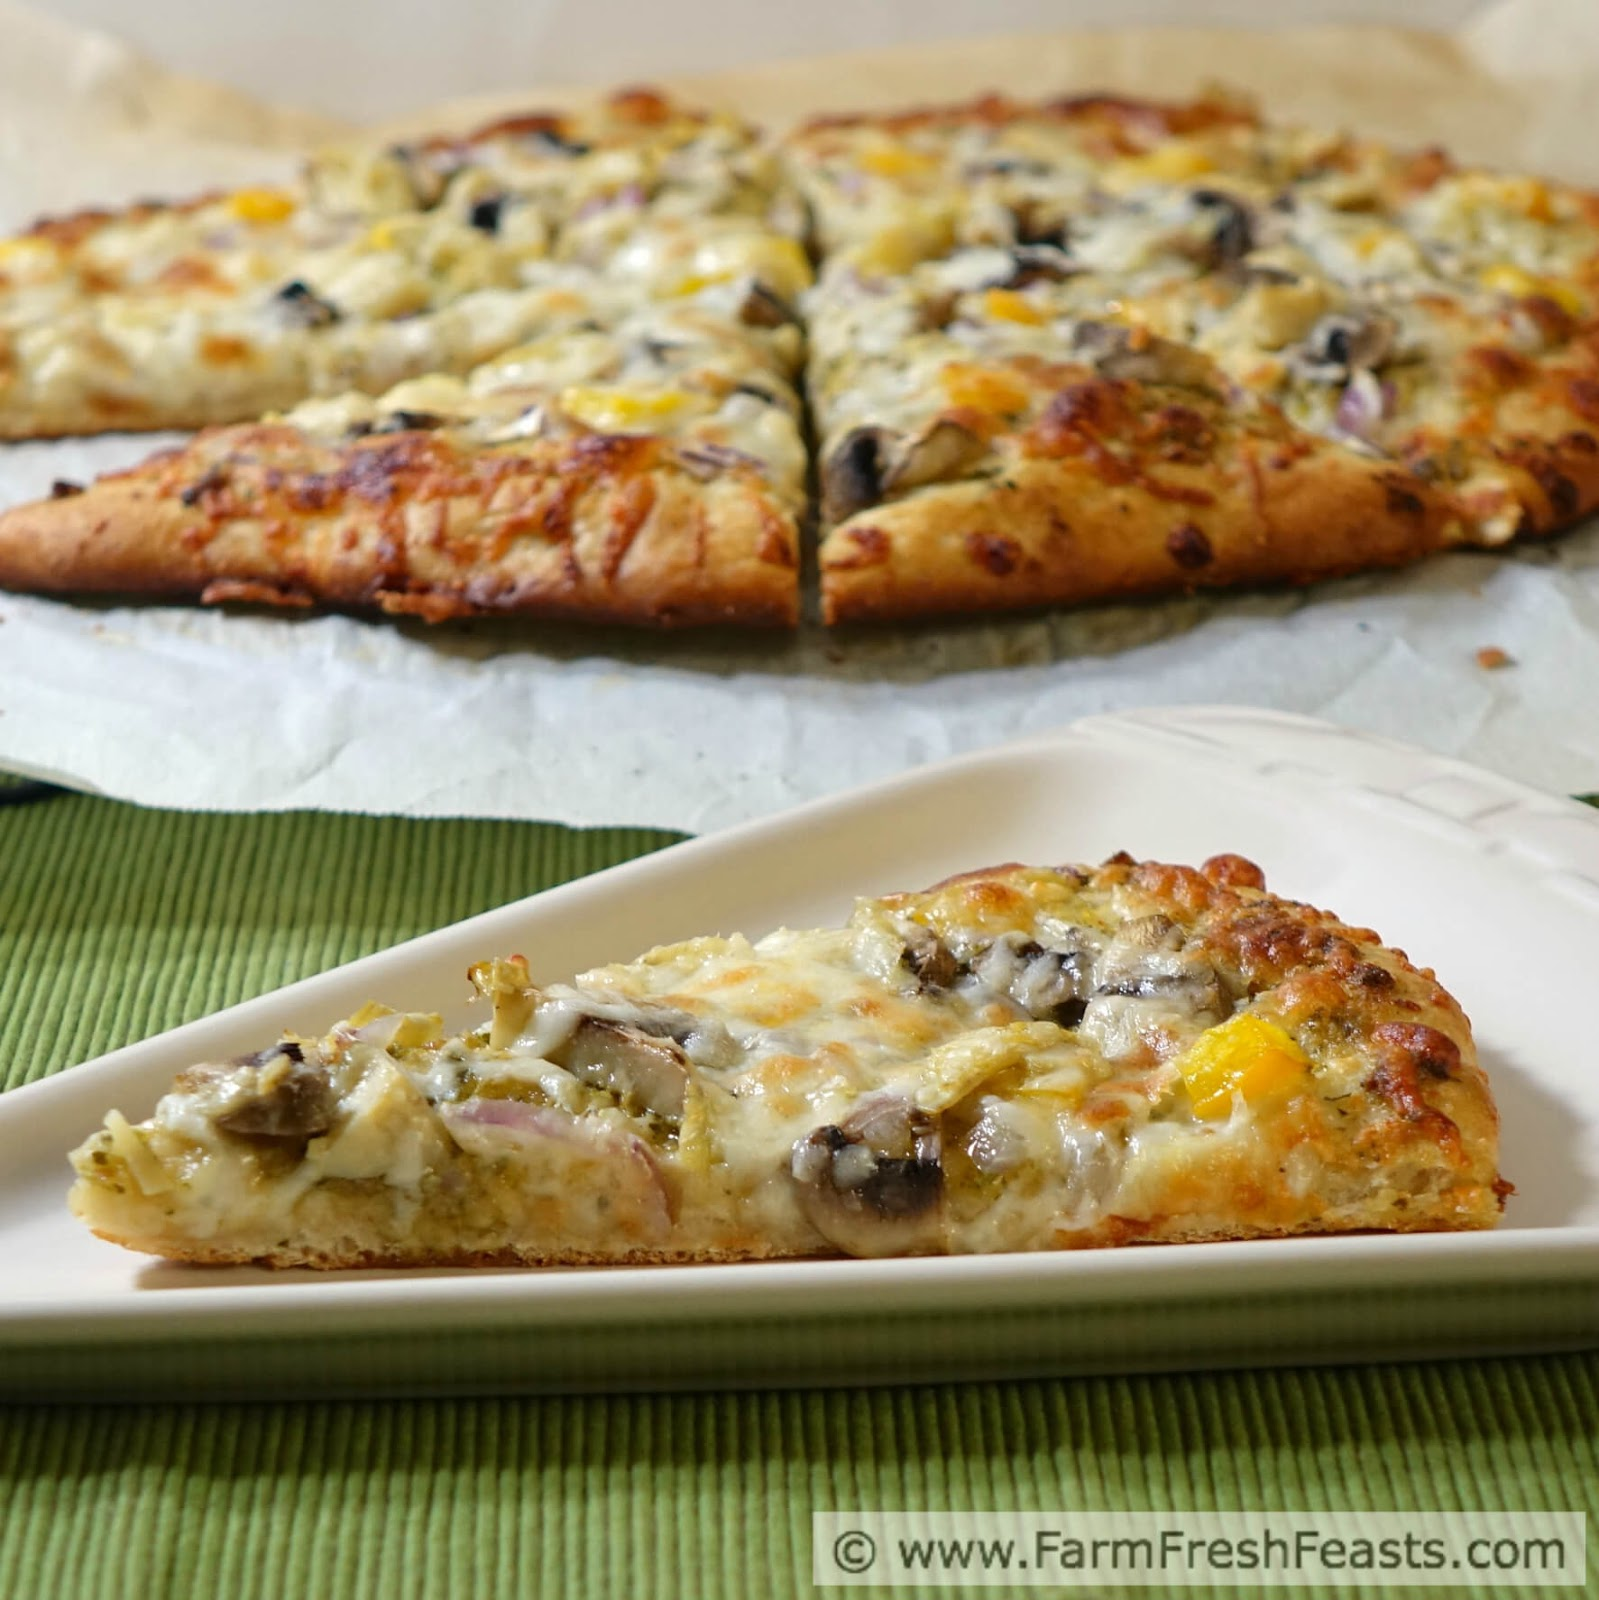 Farm fresh feasts csa recipe index revamped and garlic scape csa recipe index revamped and garlic scape pesto pizza with mushroom artichoke pepper and red onion forumfinder Choice Image